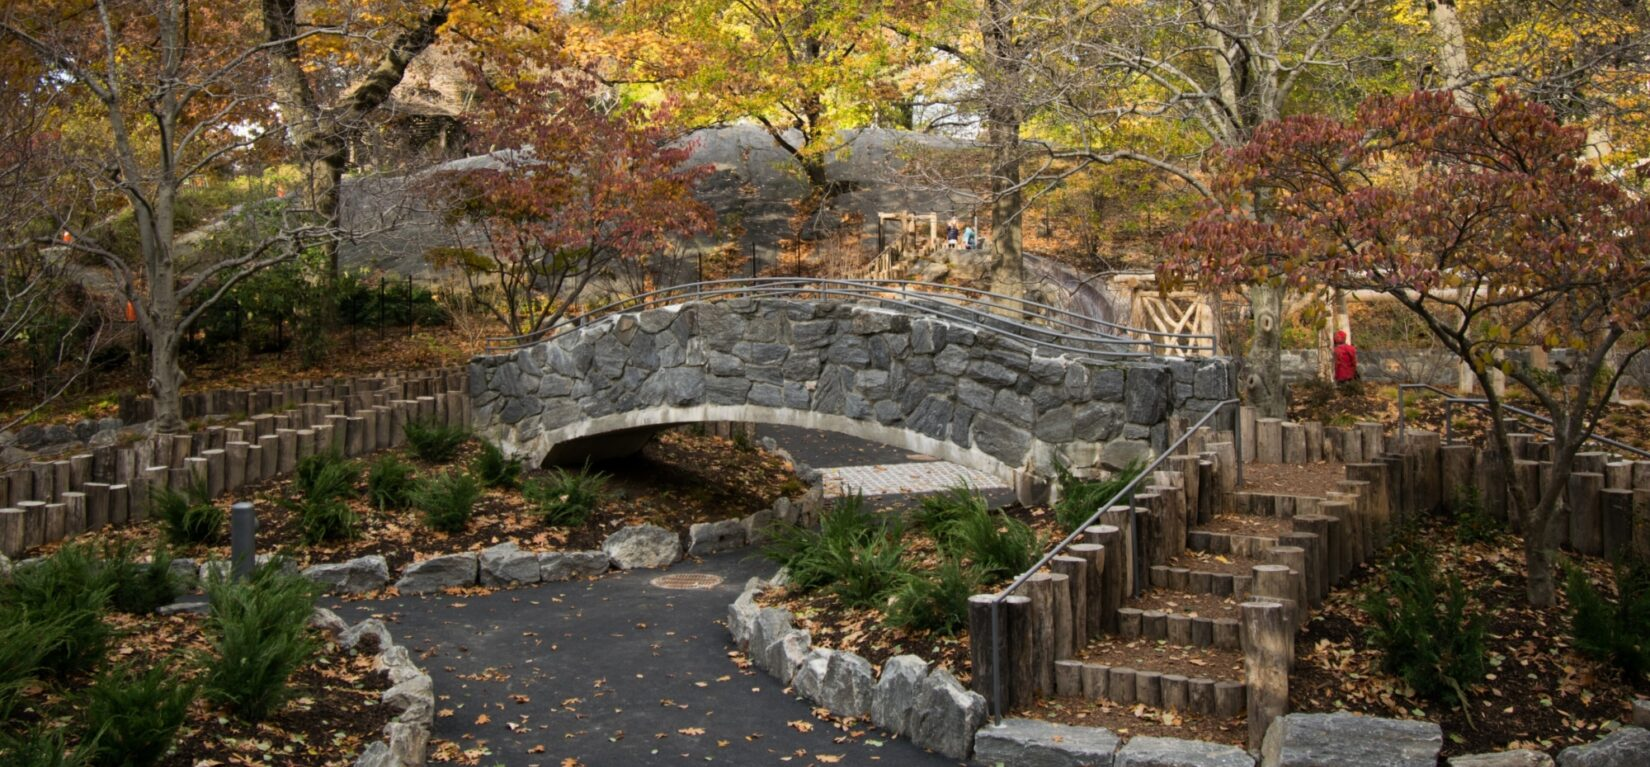 The playground is beautifully integrated into its Park setting